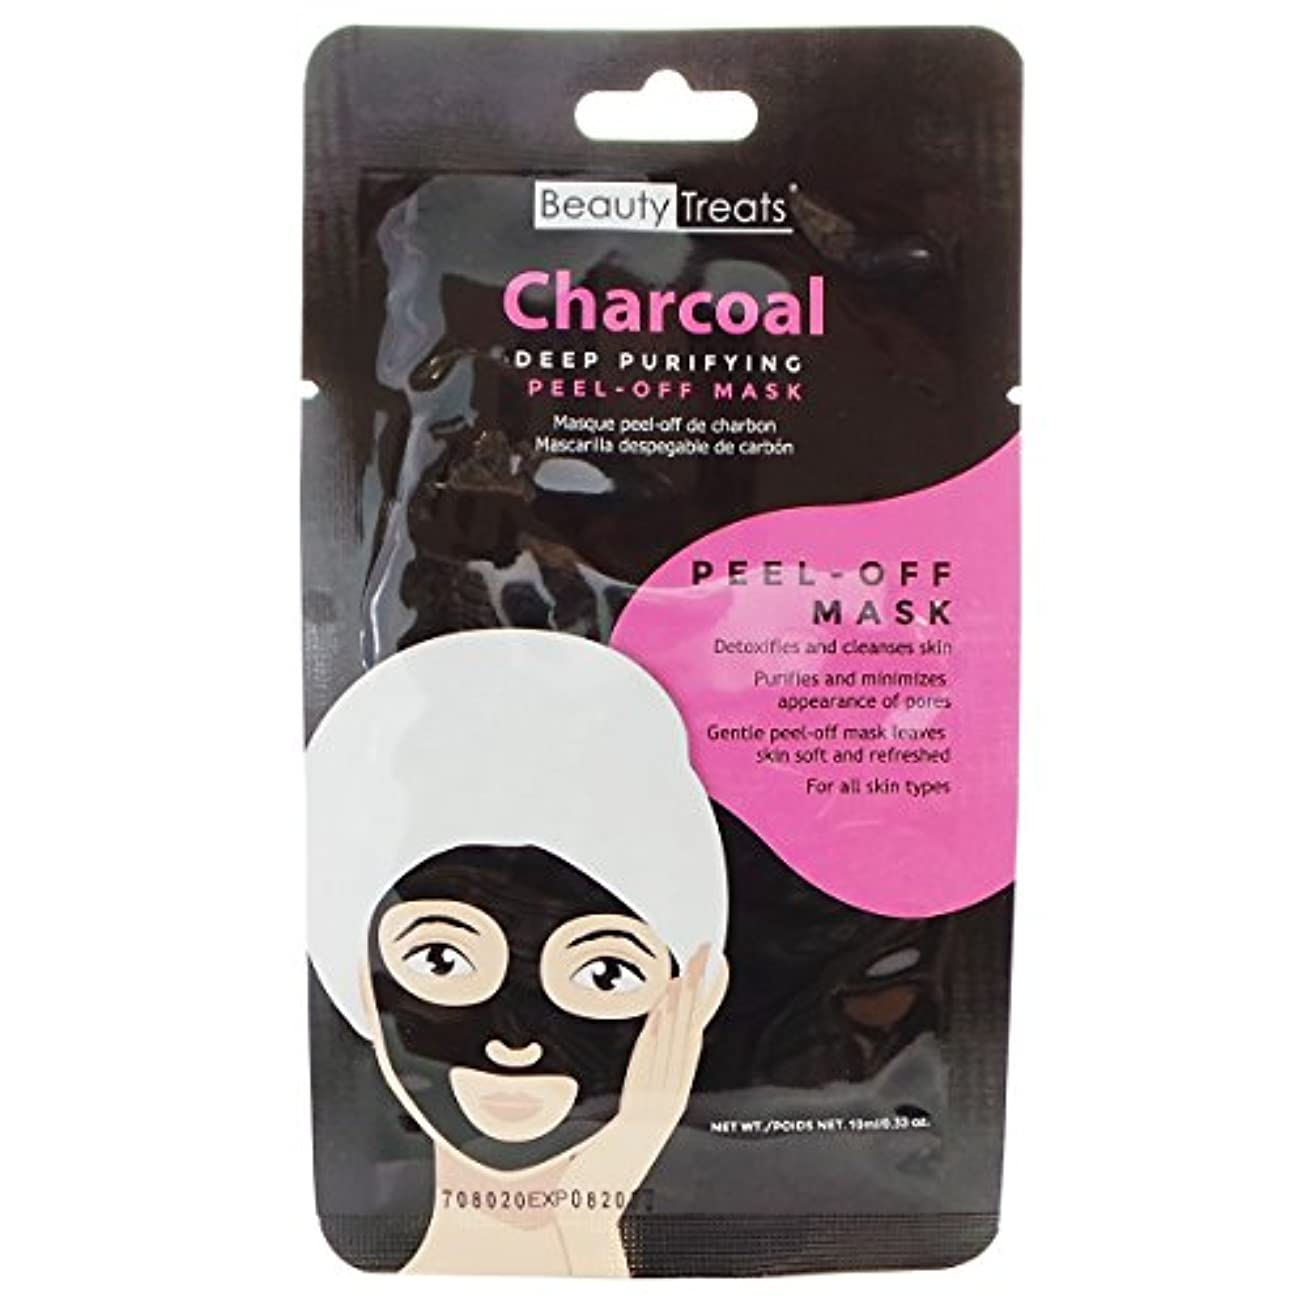 減らす過激派ヒープ(6 Pack) BEAUTY TREATS Deep Purifying Peel-Off Charcoal Mask (並行輸入品)